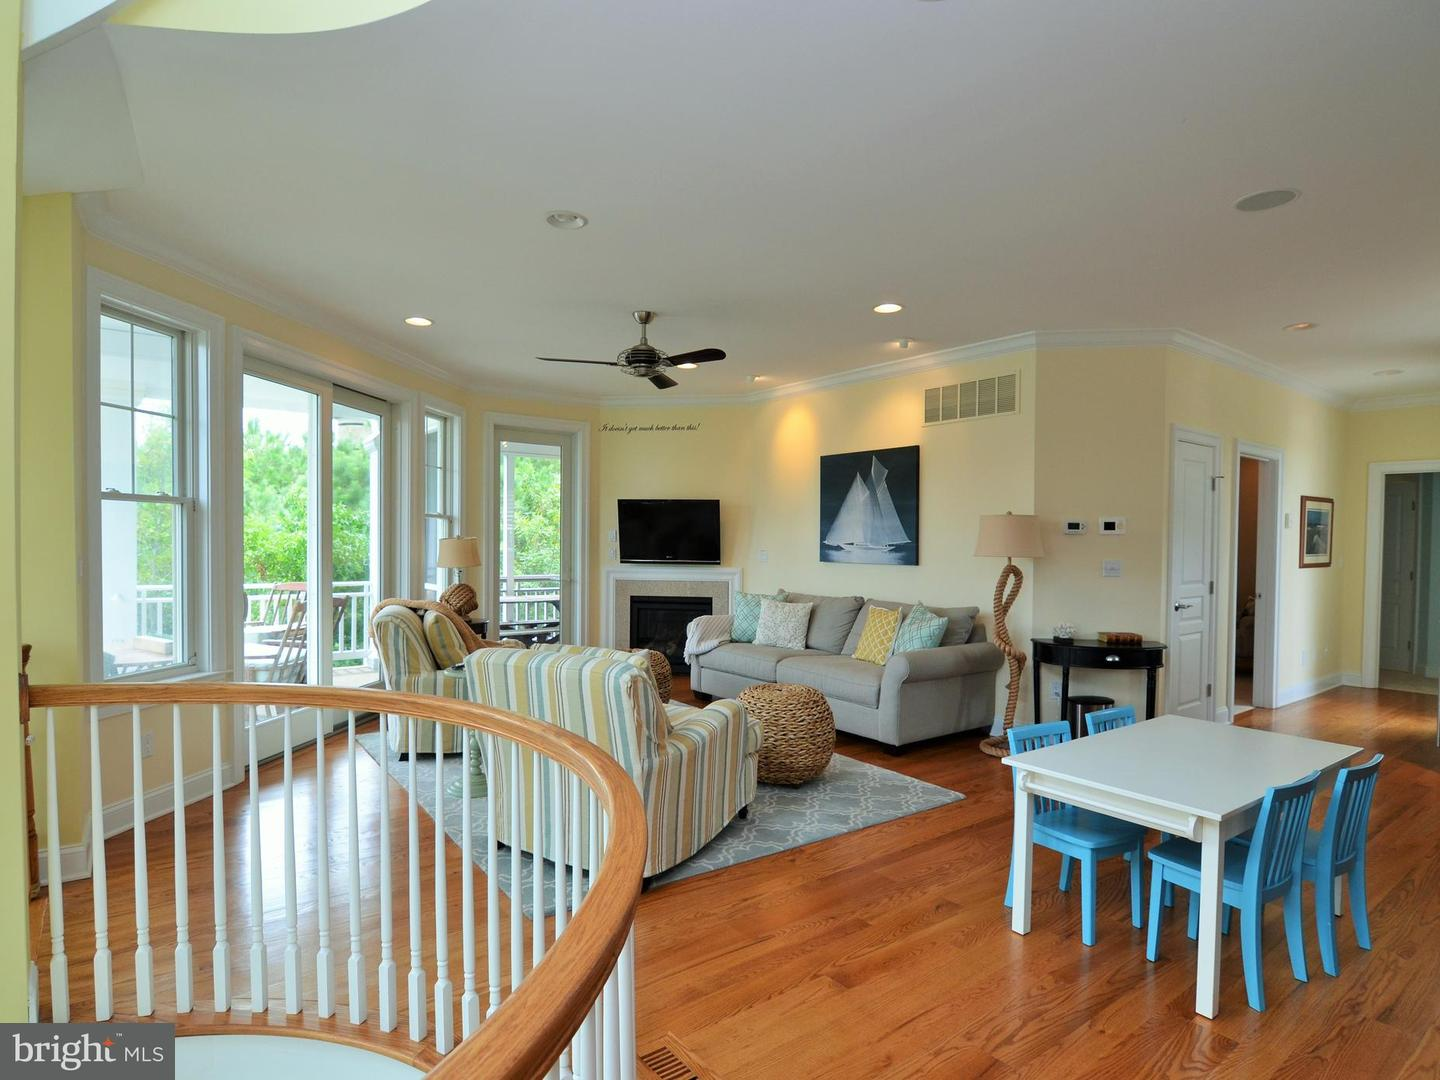 1002293530-300500808269-2018-09-25-15-08-25 31 Hall Ave | Rehoboth Beach, De Real Estate For Sale | MLS# 1002293530  - Suzanne Macnab